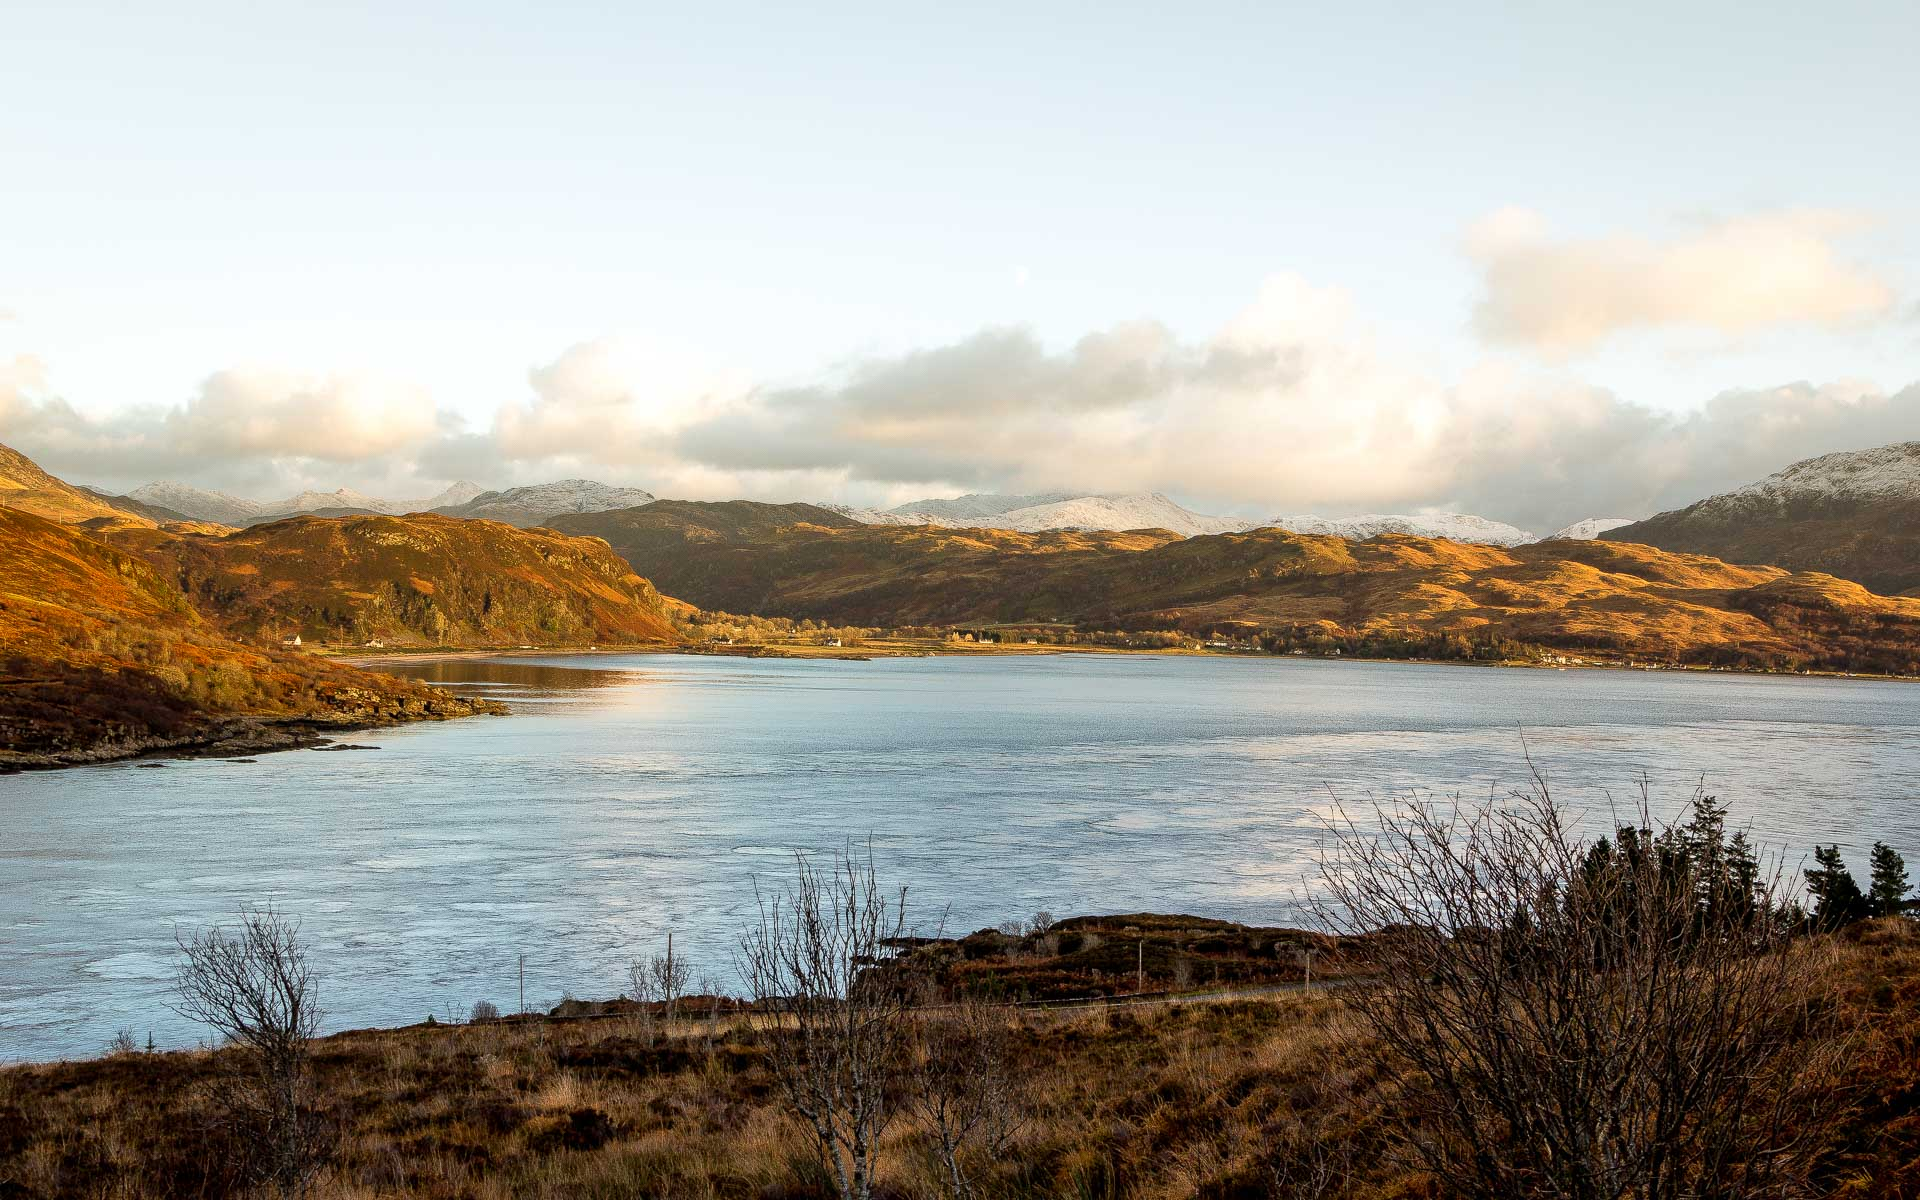 …serving Scotland's most isolated and remote communities